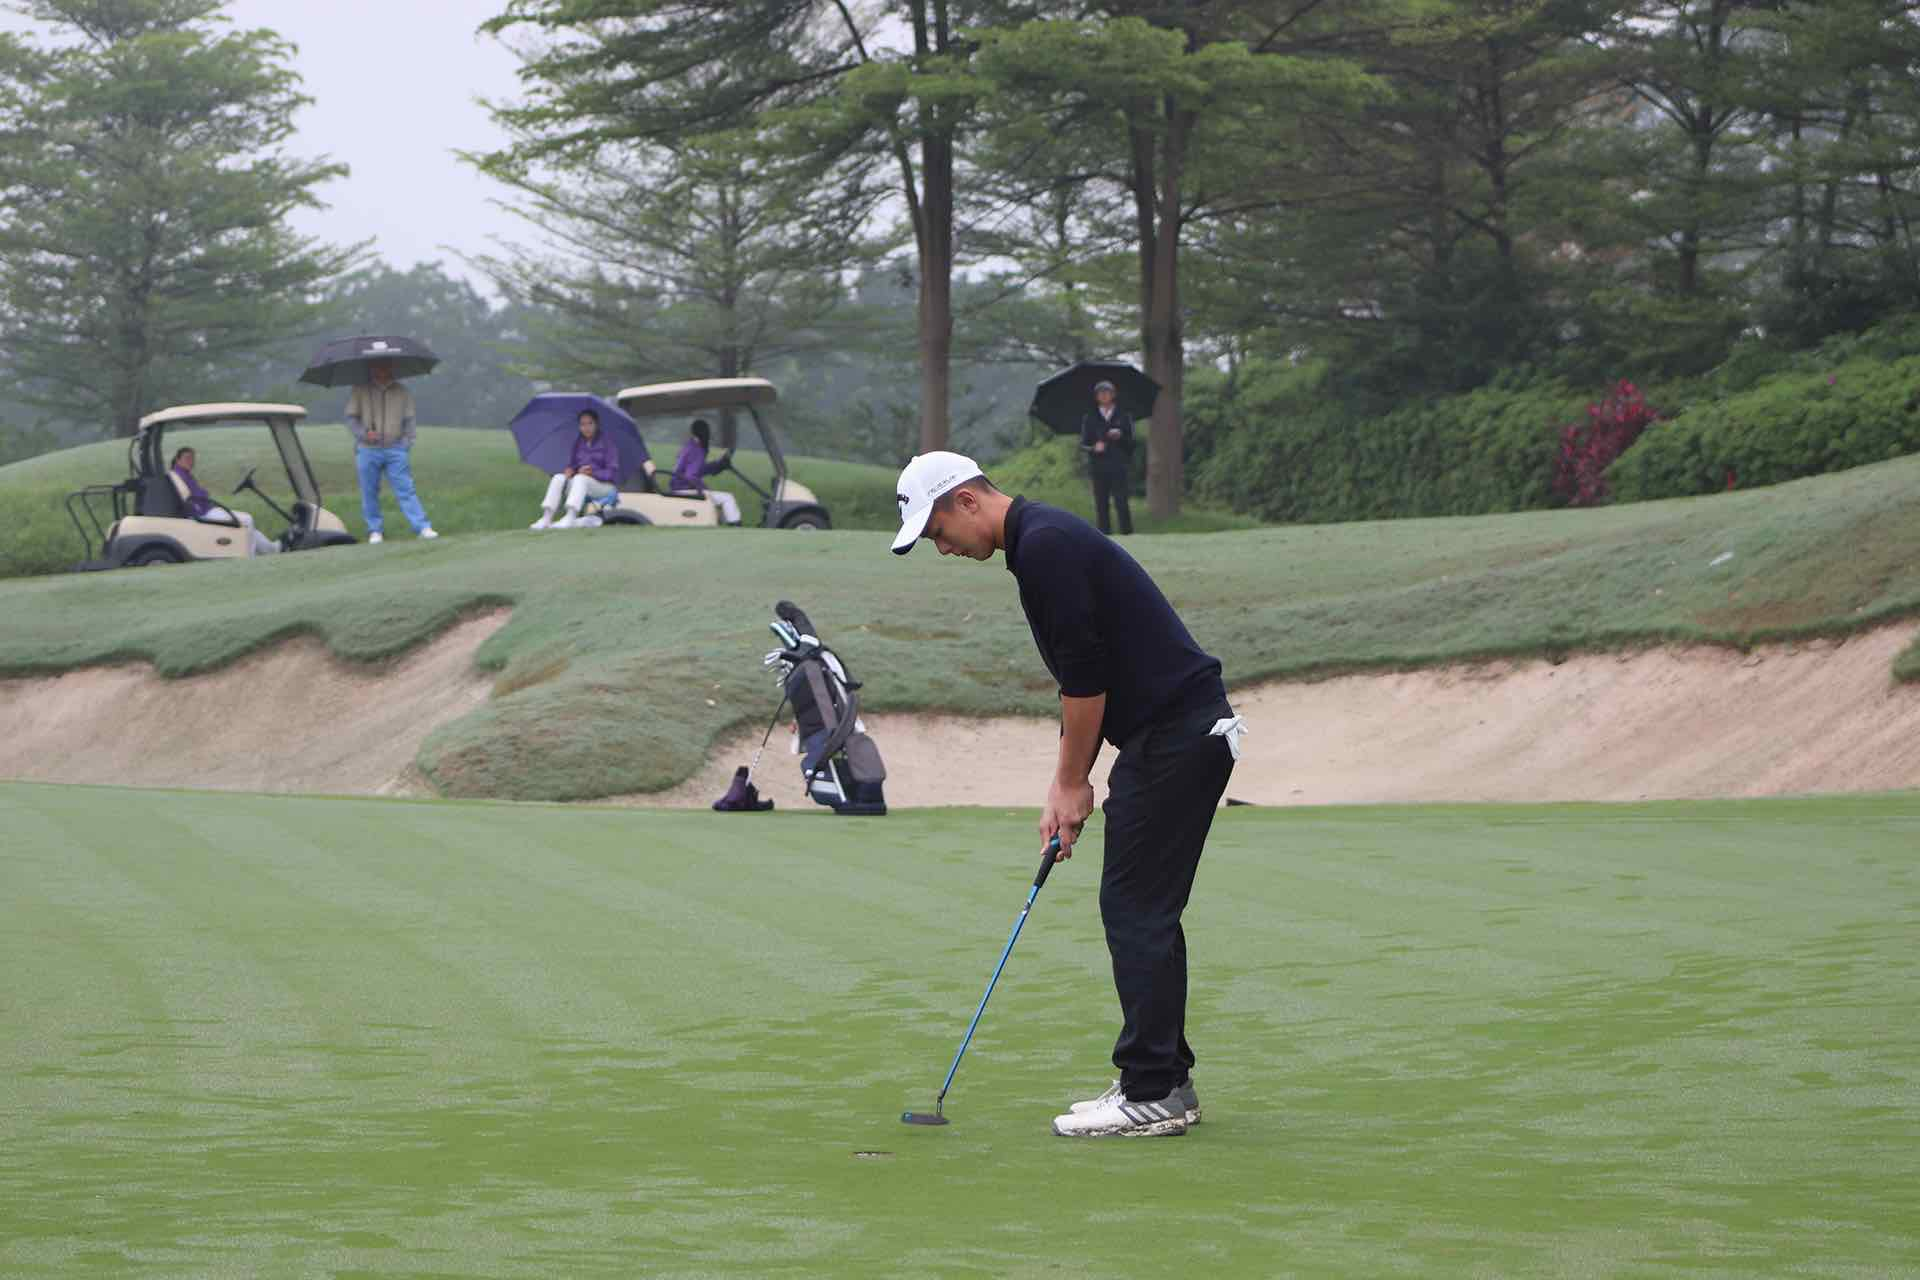 Hsiao Che Yang First Team Junior All-Asia Putting downhill at The Southern Junior